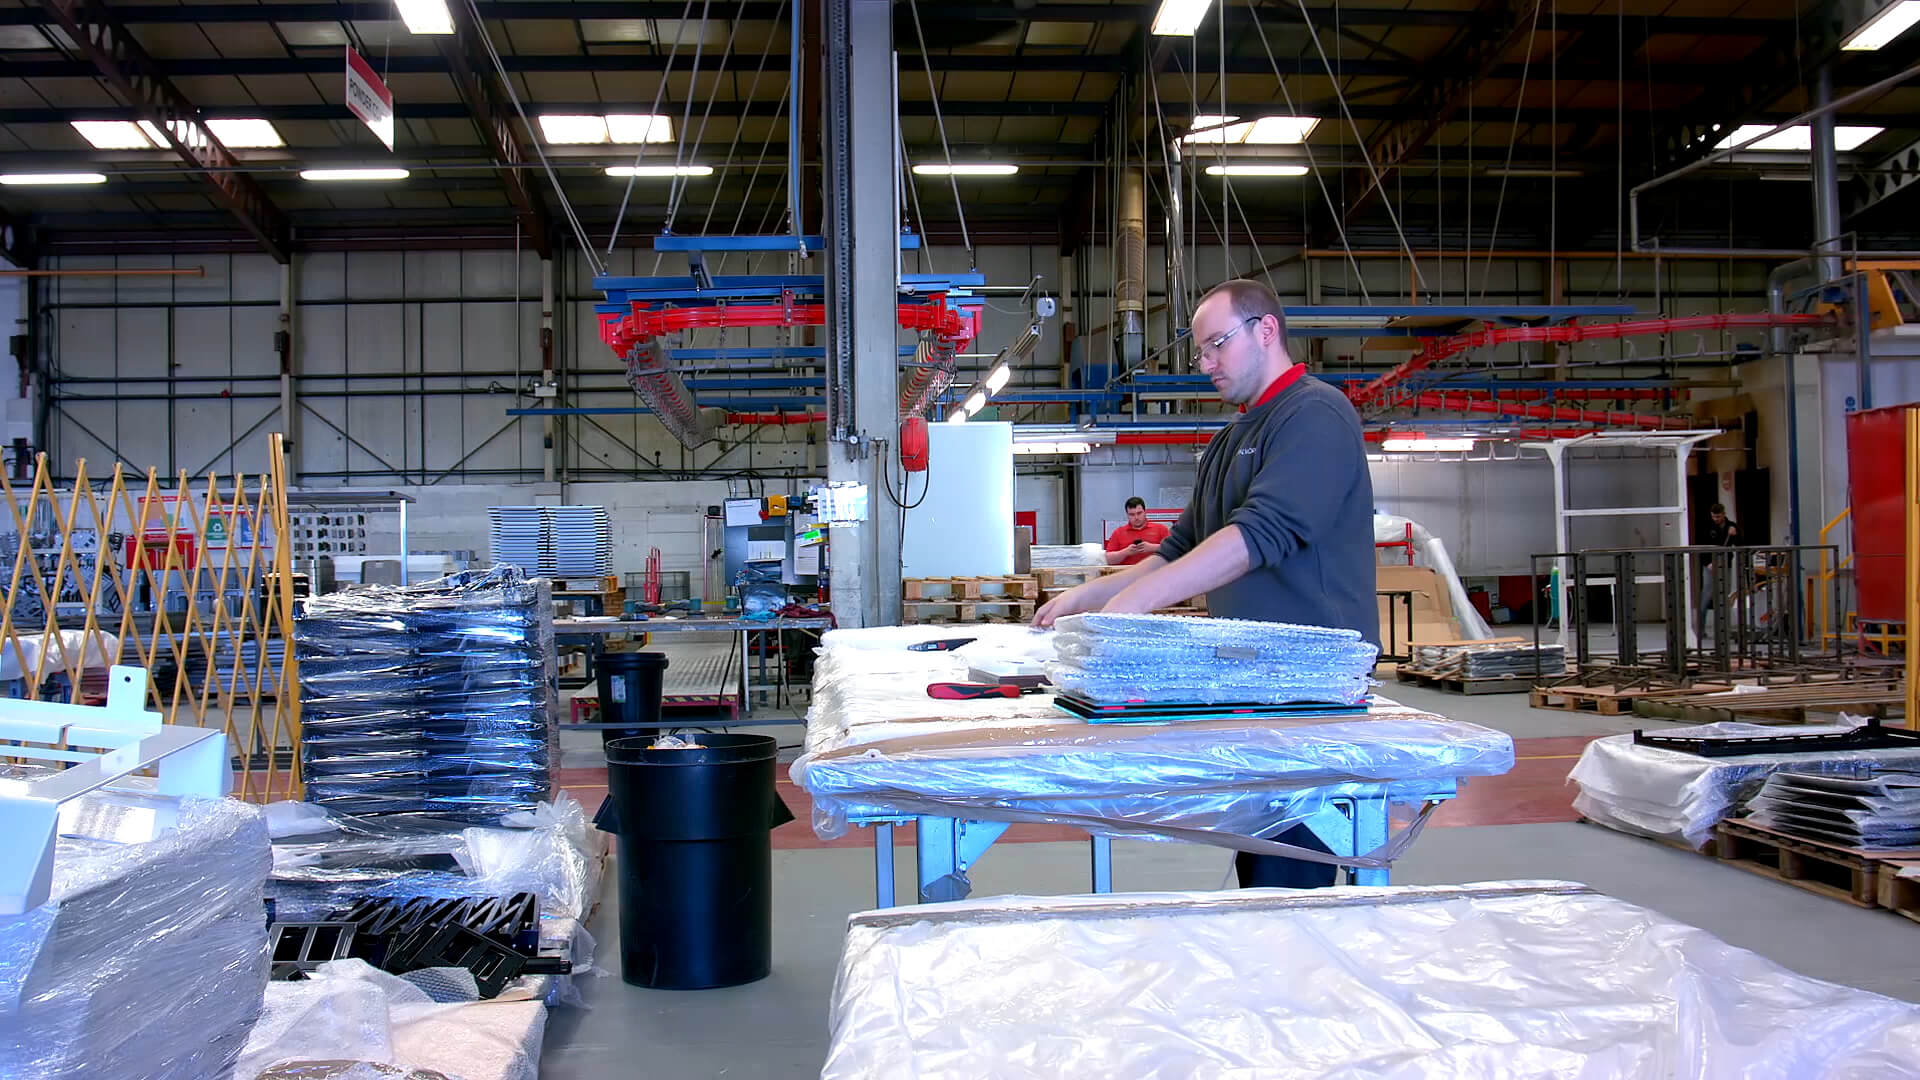 JC Metalworks product packing being carried out